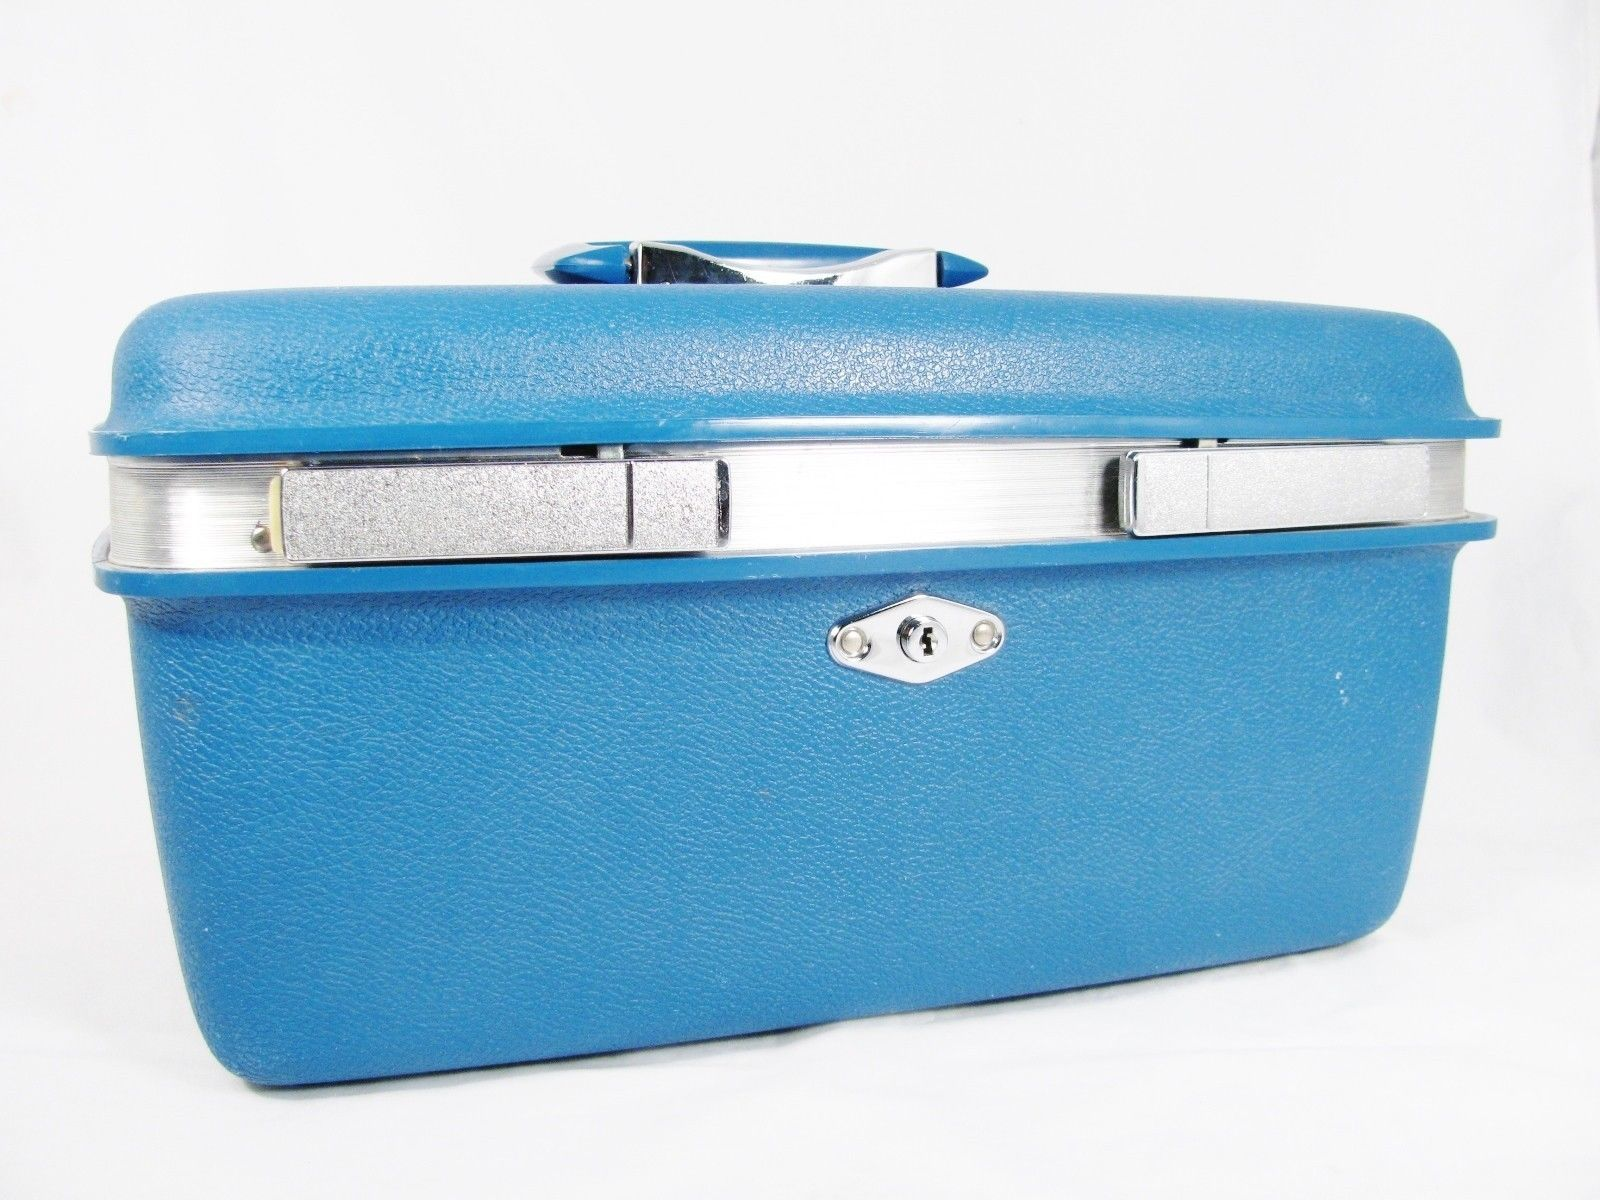 Primary image for ROYAL TRAVELLER MONTBELLO Blue Makeup Train Overnight Travel Hardcase